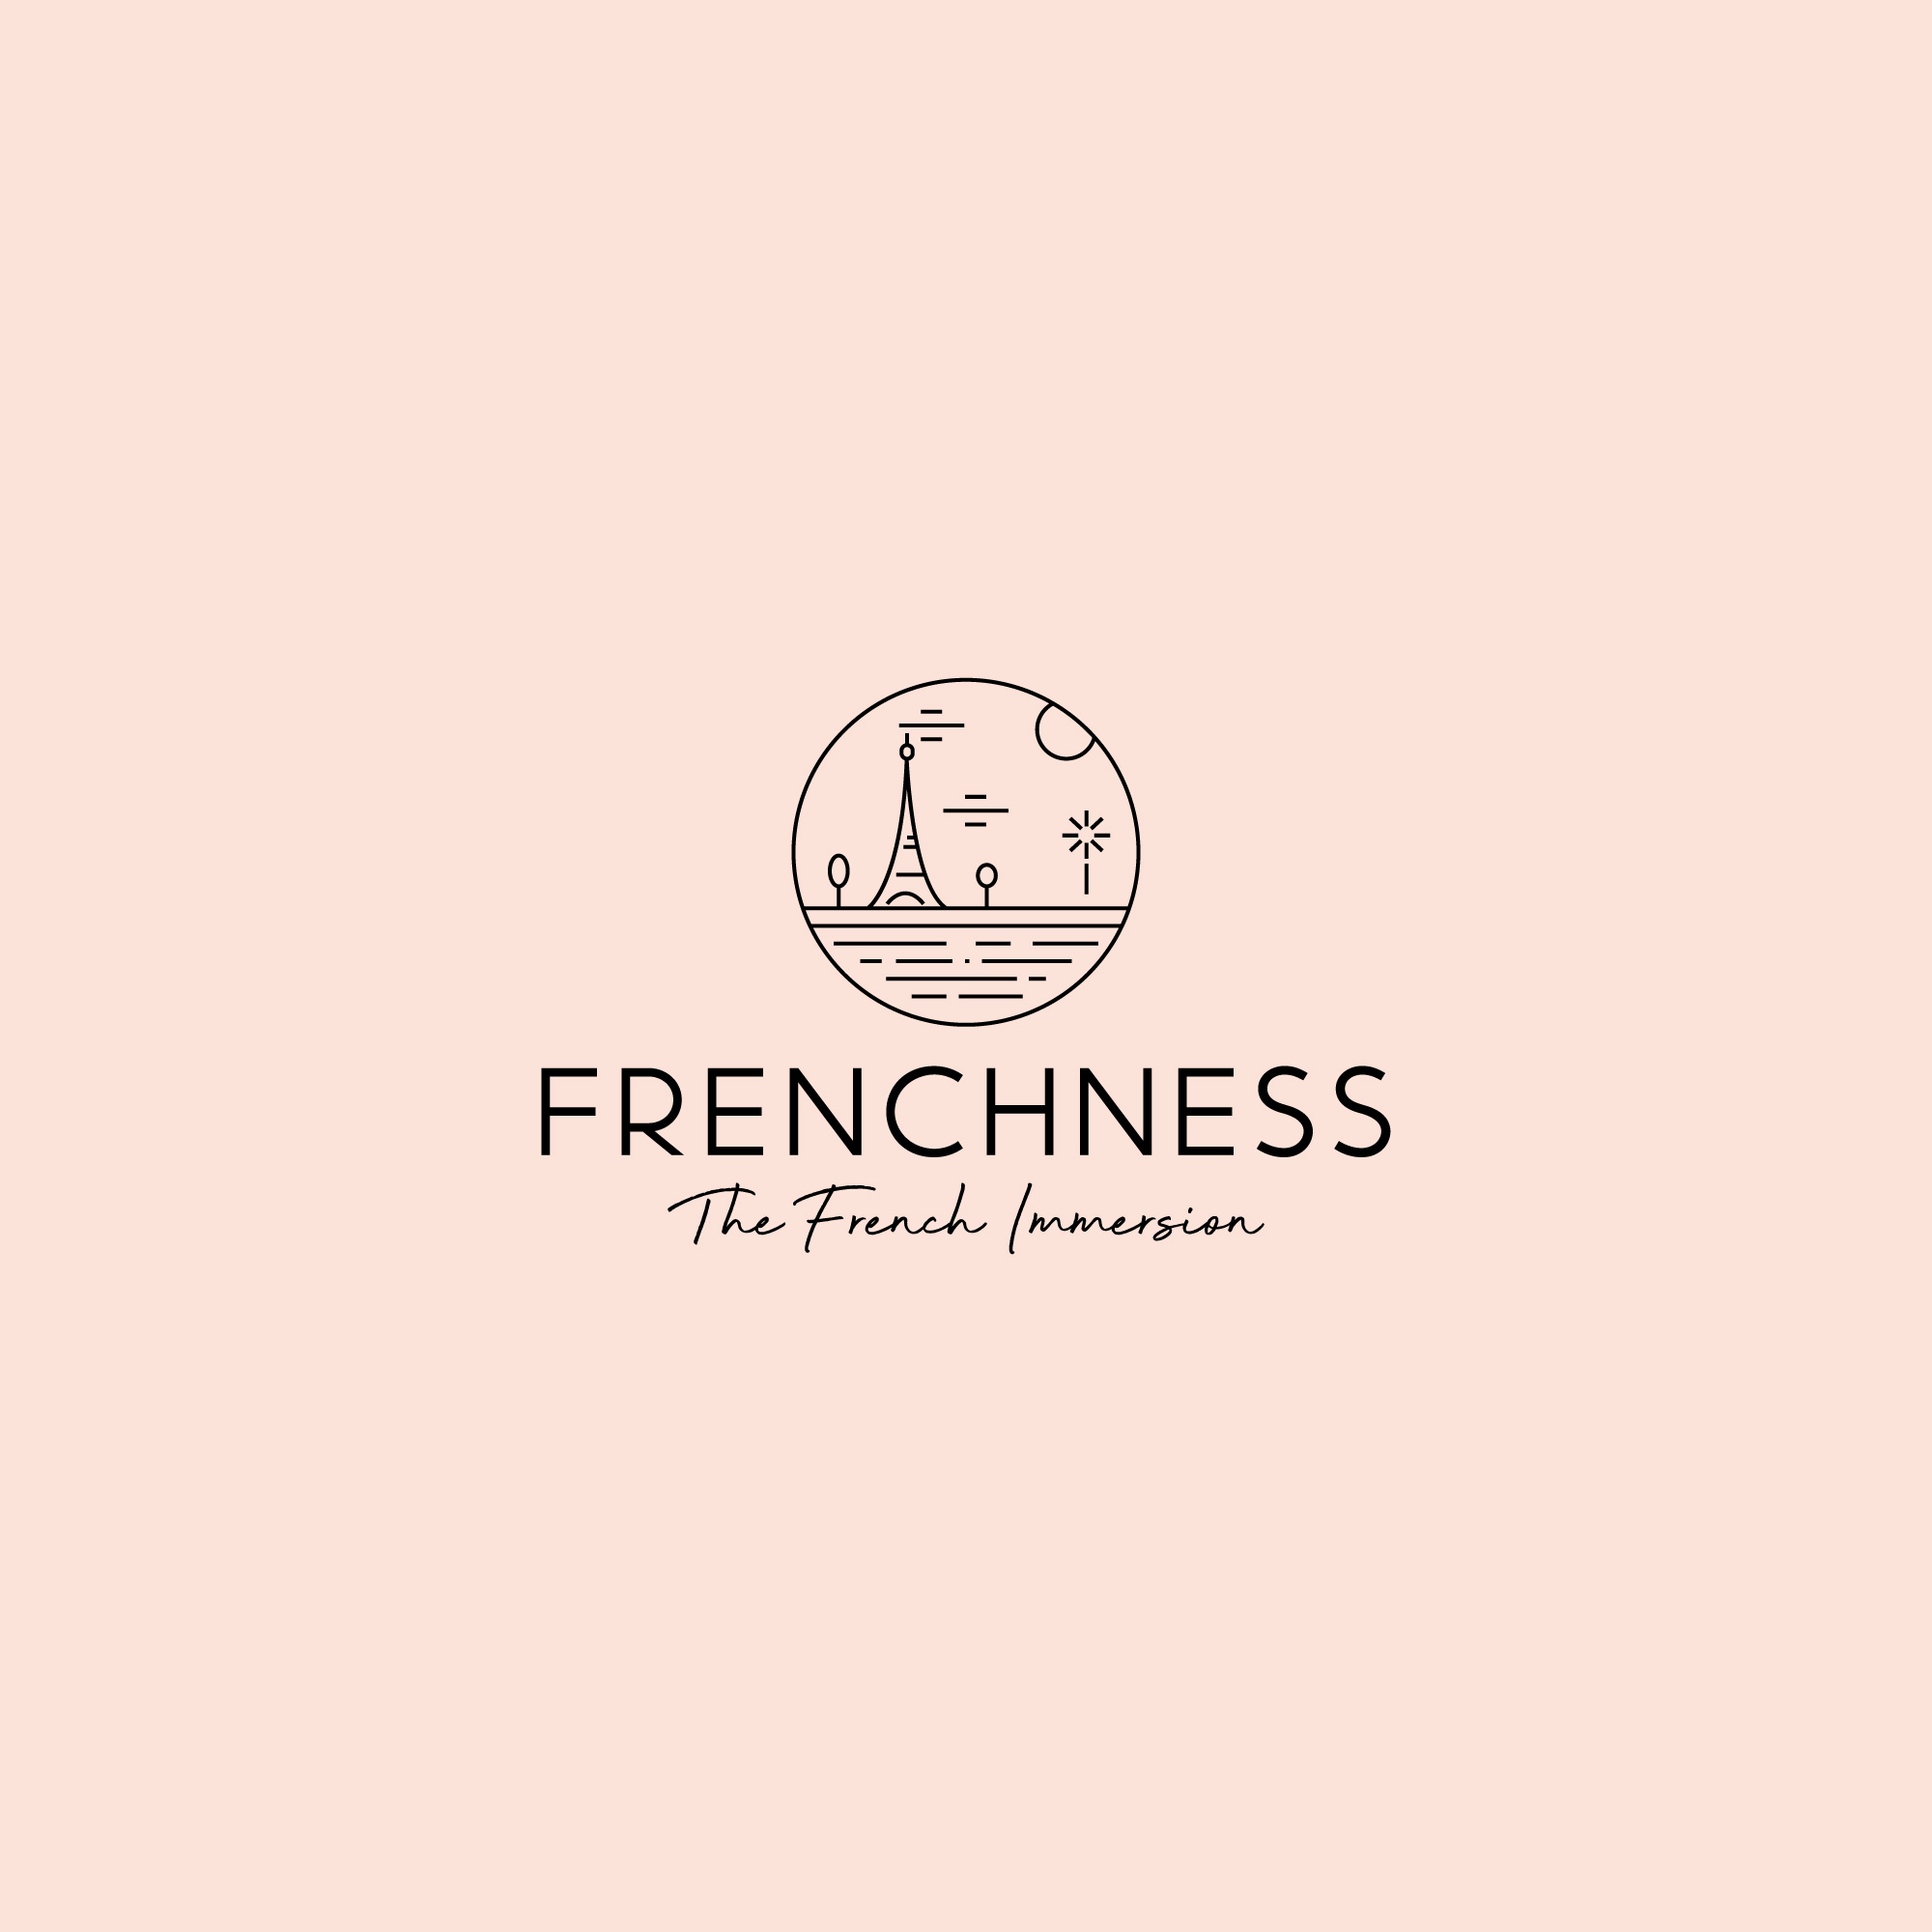 Frenchness